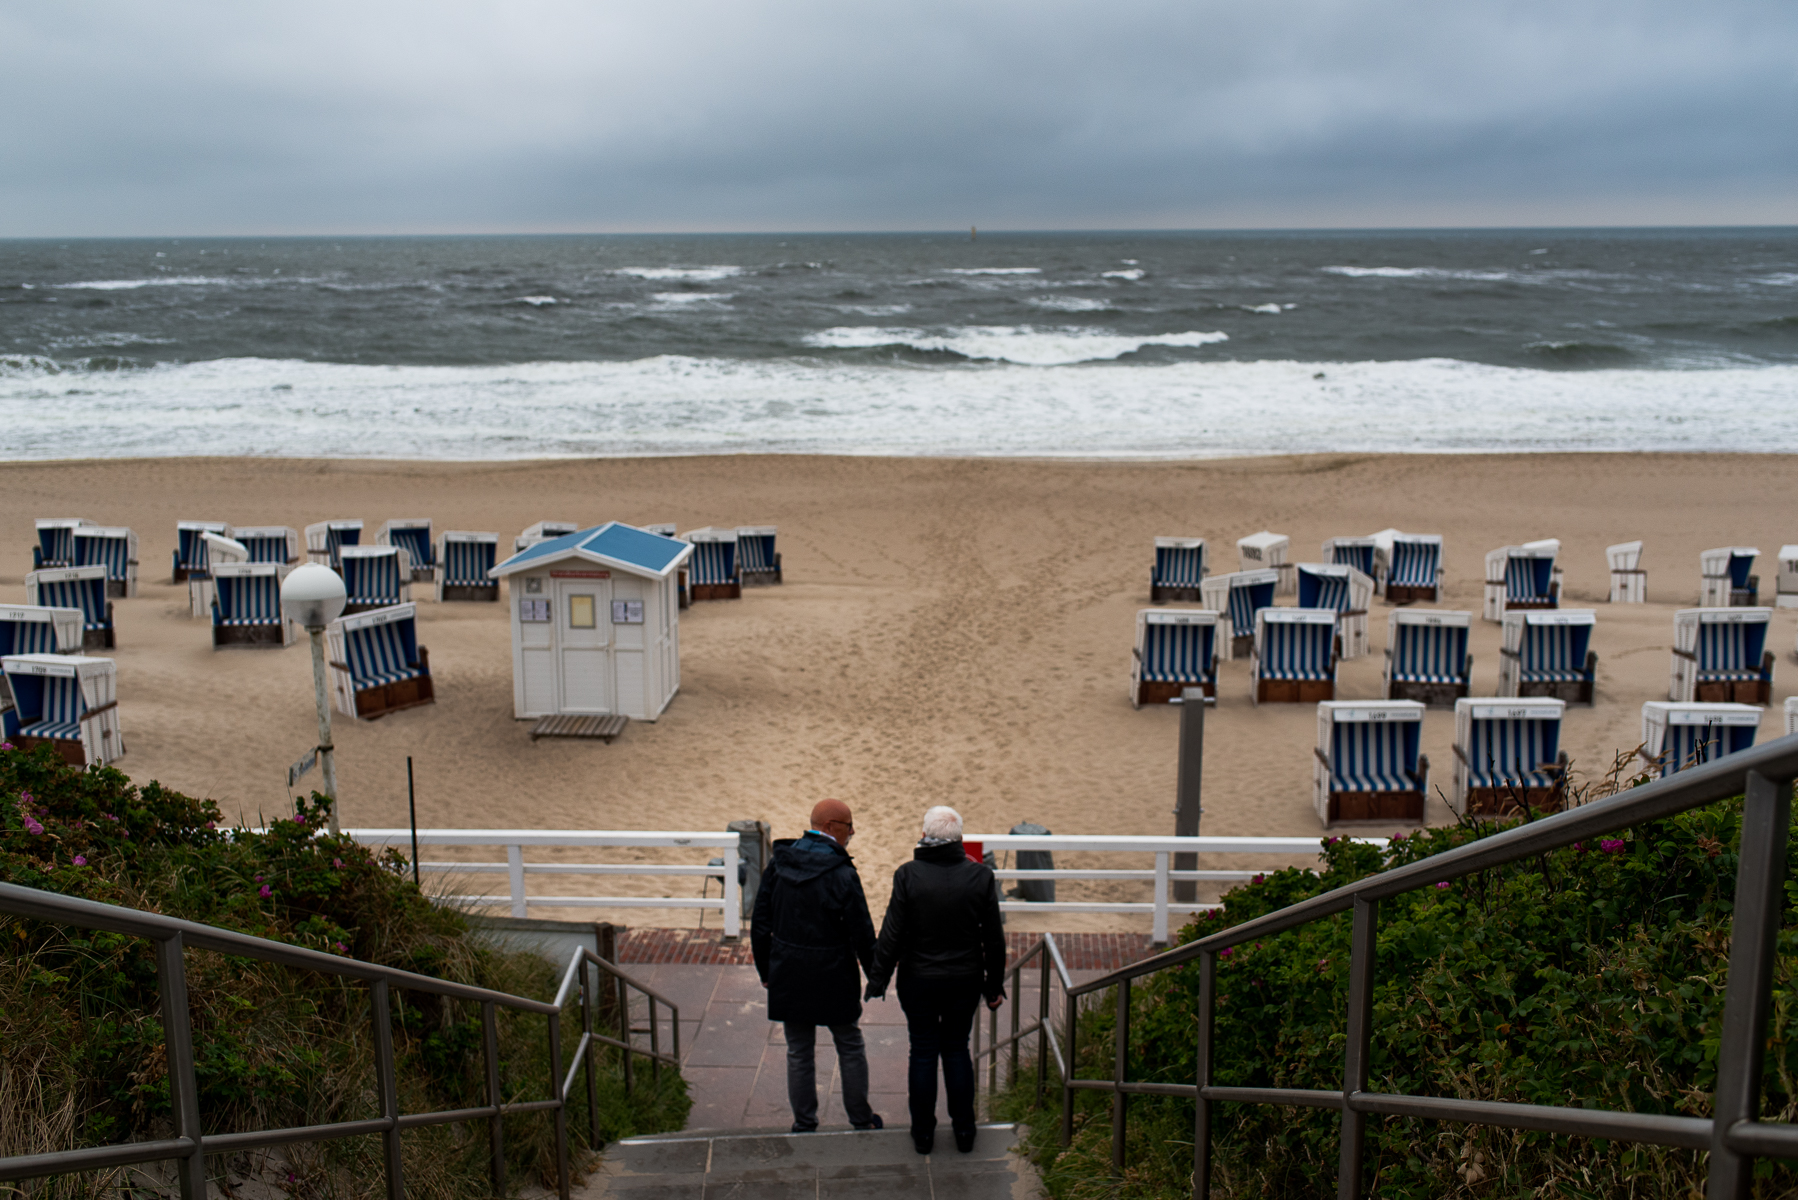 Mom and dad look over the ocean before starting an evening walk along the promenade in Westerland. Sylt, Germany, June 20, 2018.